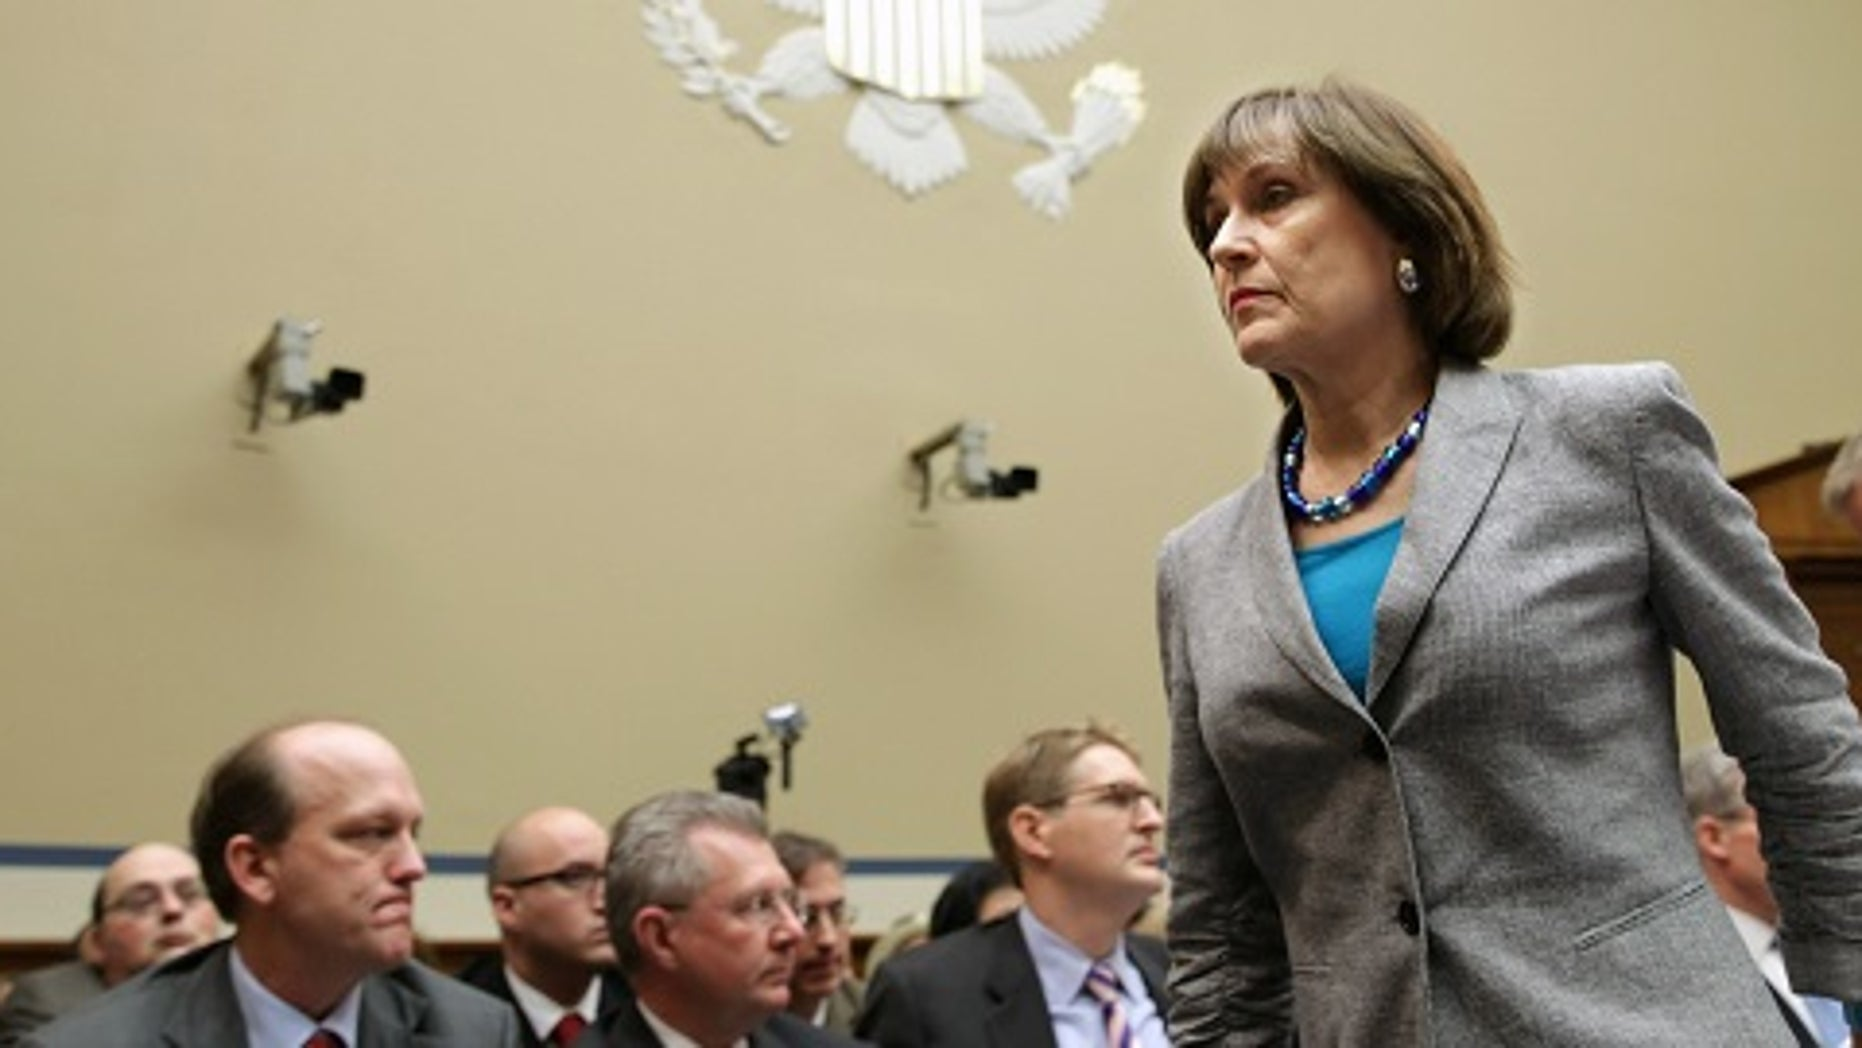 """WASHINGTON, DC - MAY 22:  Internal Revenue Service Director of Exempt Organizations Lois Lerner leaves a hearing of the House Oversight and Government Reform Committee after refusing to testify May 22, 2013 in Washington, DC. The committee is investigating allegations that the IRS targeted conservative non-profit organizations with the words """"tea party"""" and """"constitution"""" in their names for additional scrutiny. Lerner, who headed the division that oversees exempt organizations, exercised her constitutional right not to answer questions.  (Photo by Chip Somodevilla/Getty Images)"""